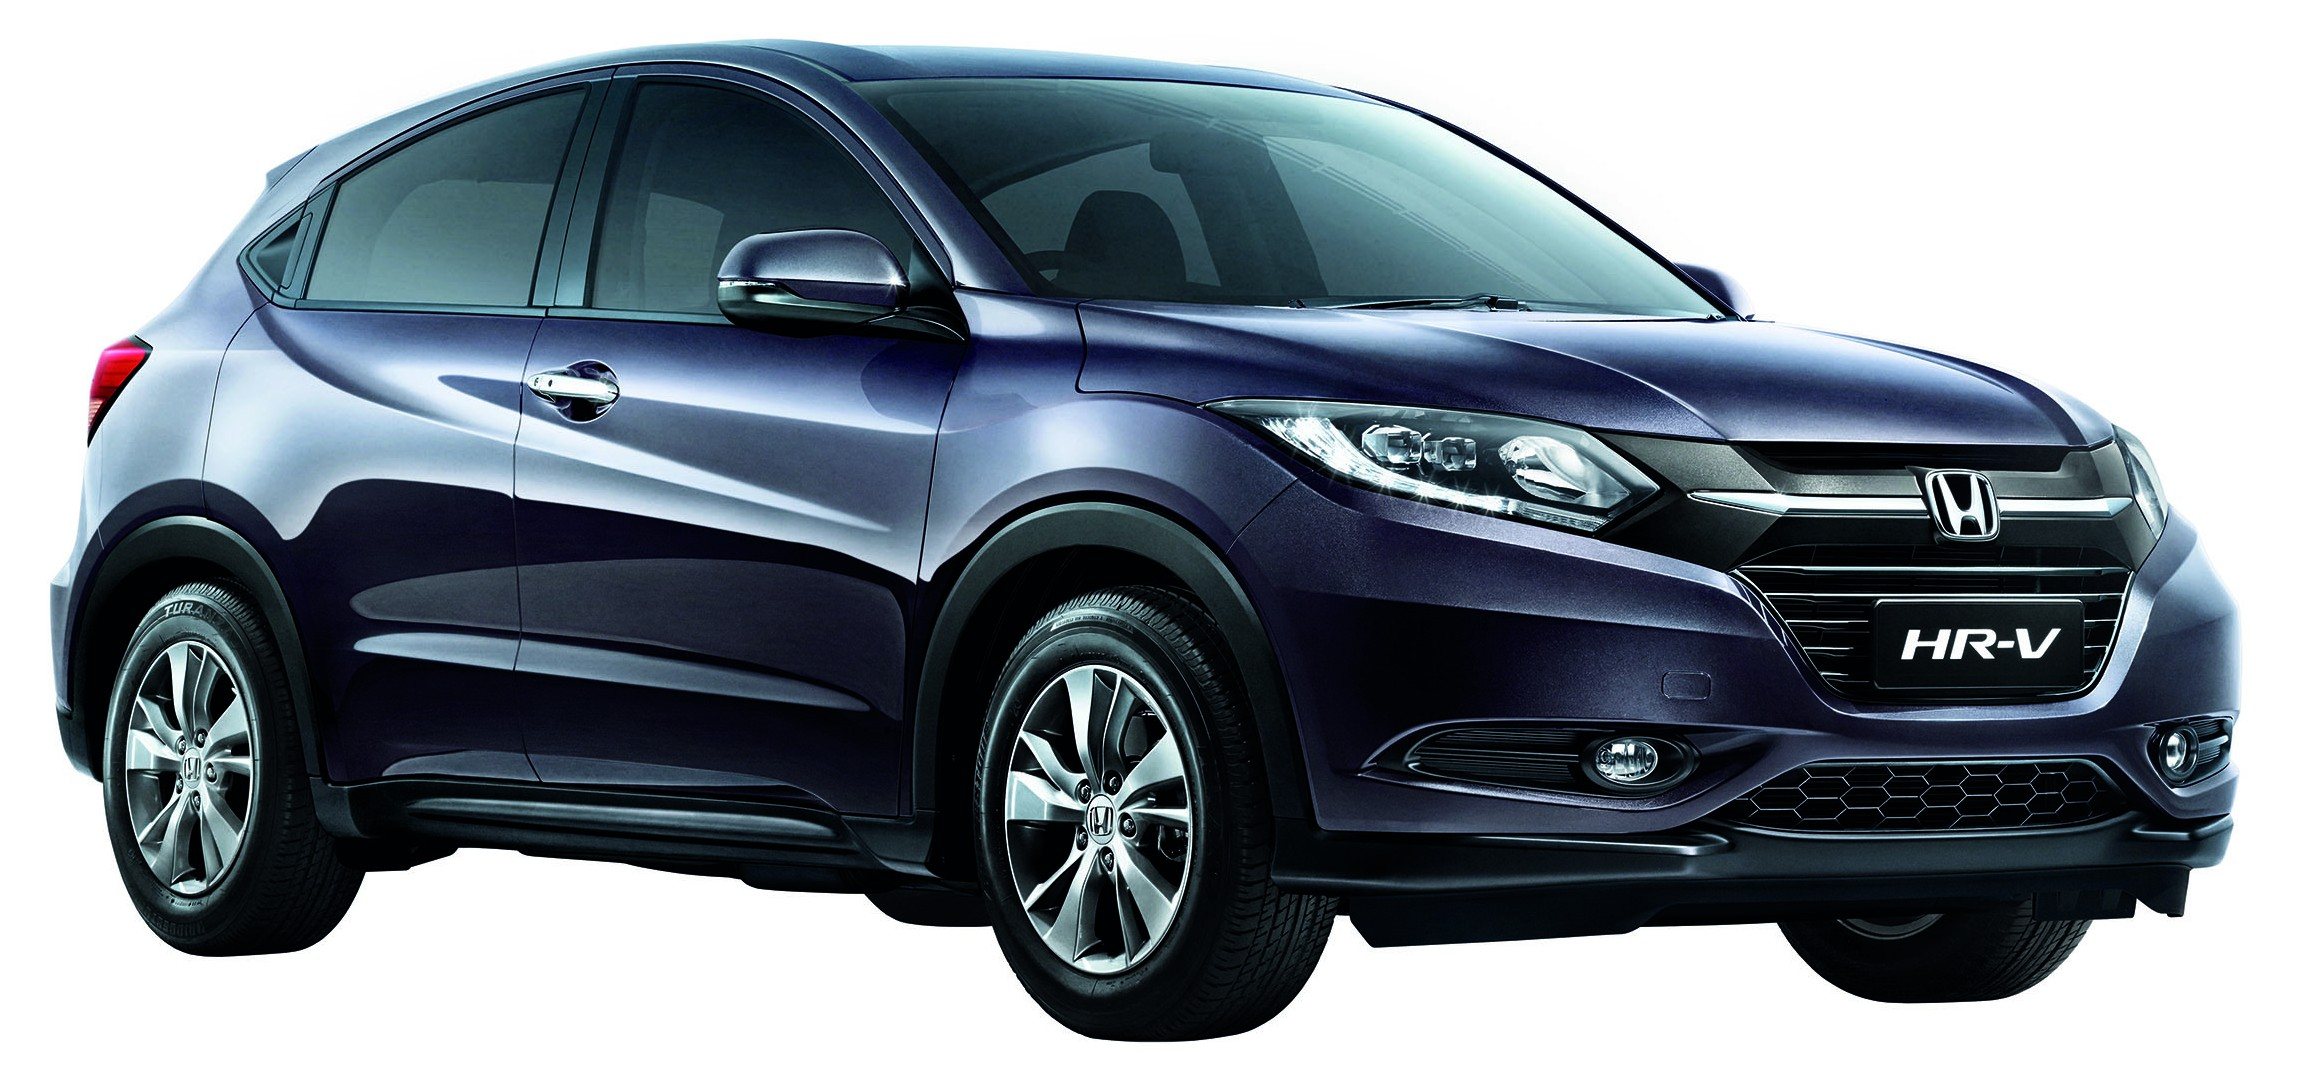 honda hr v to receive 1 0 litre turbo engine in china. Black Bedroom Furniture Sets. Home Design Ideas